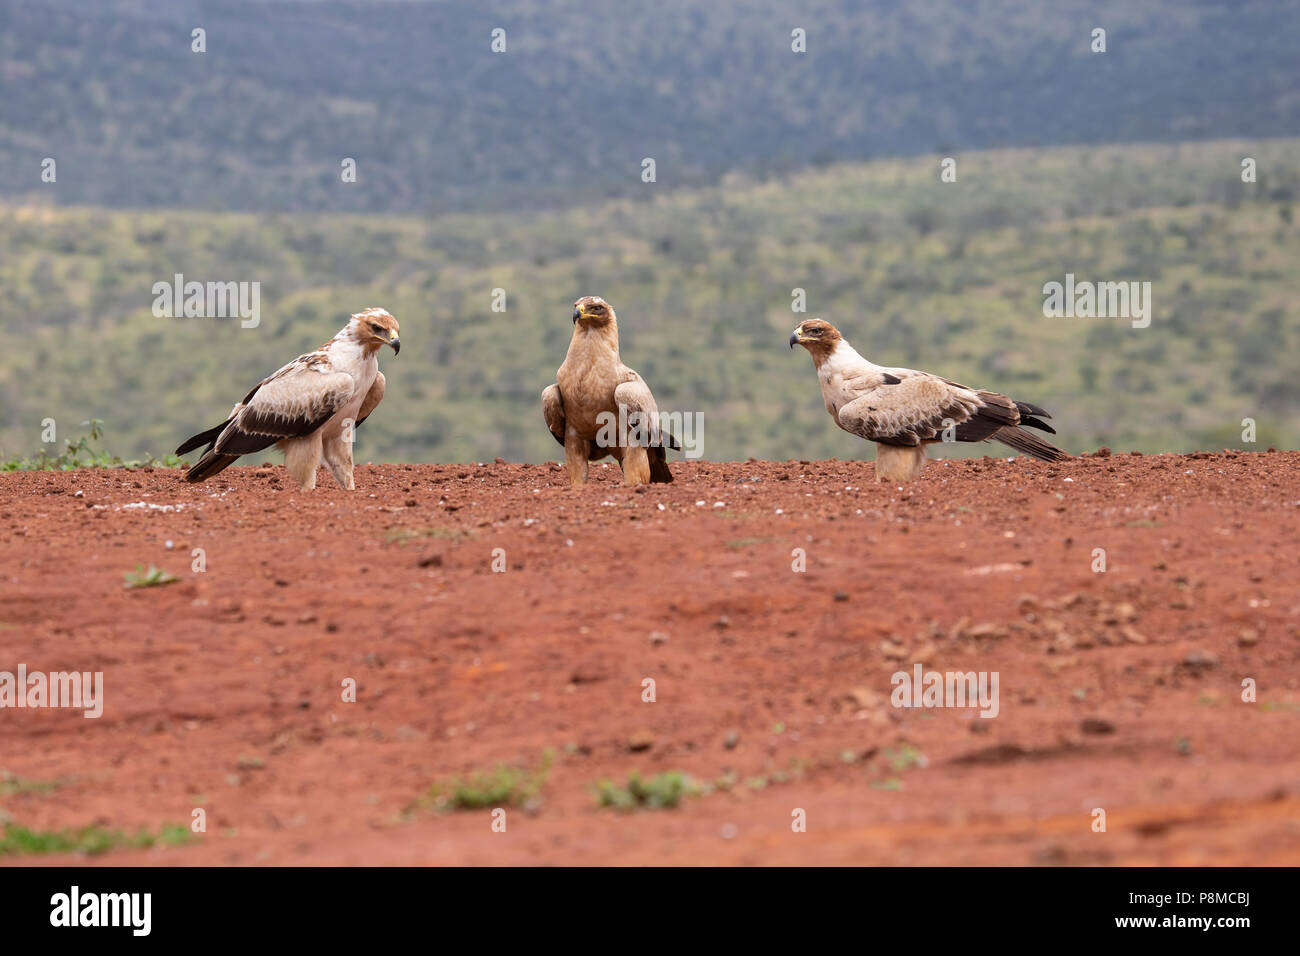 Three Tawny Eagles Aquila rapax scavenging on the ground at the site of kill in KwaZulu Natal, South Africa - Stock Image